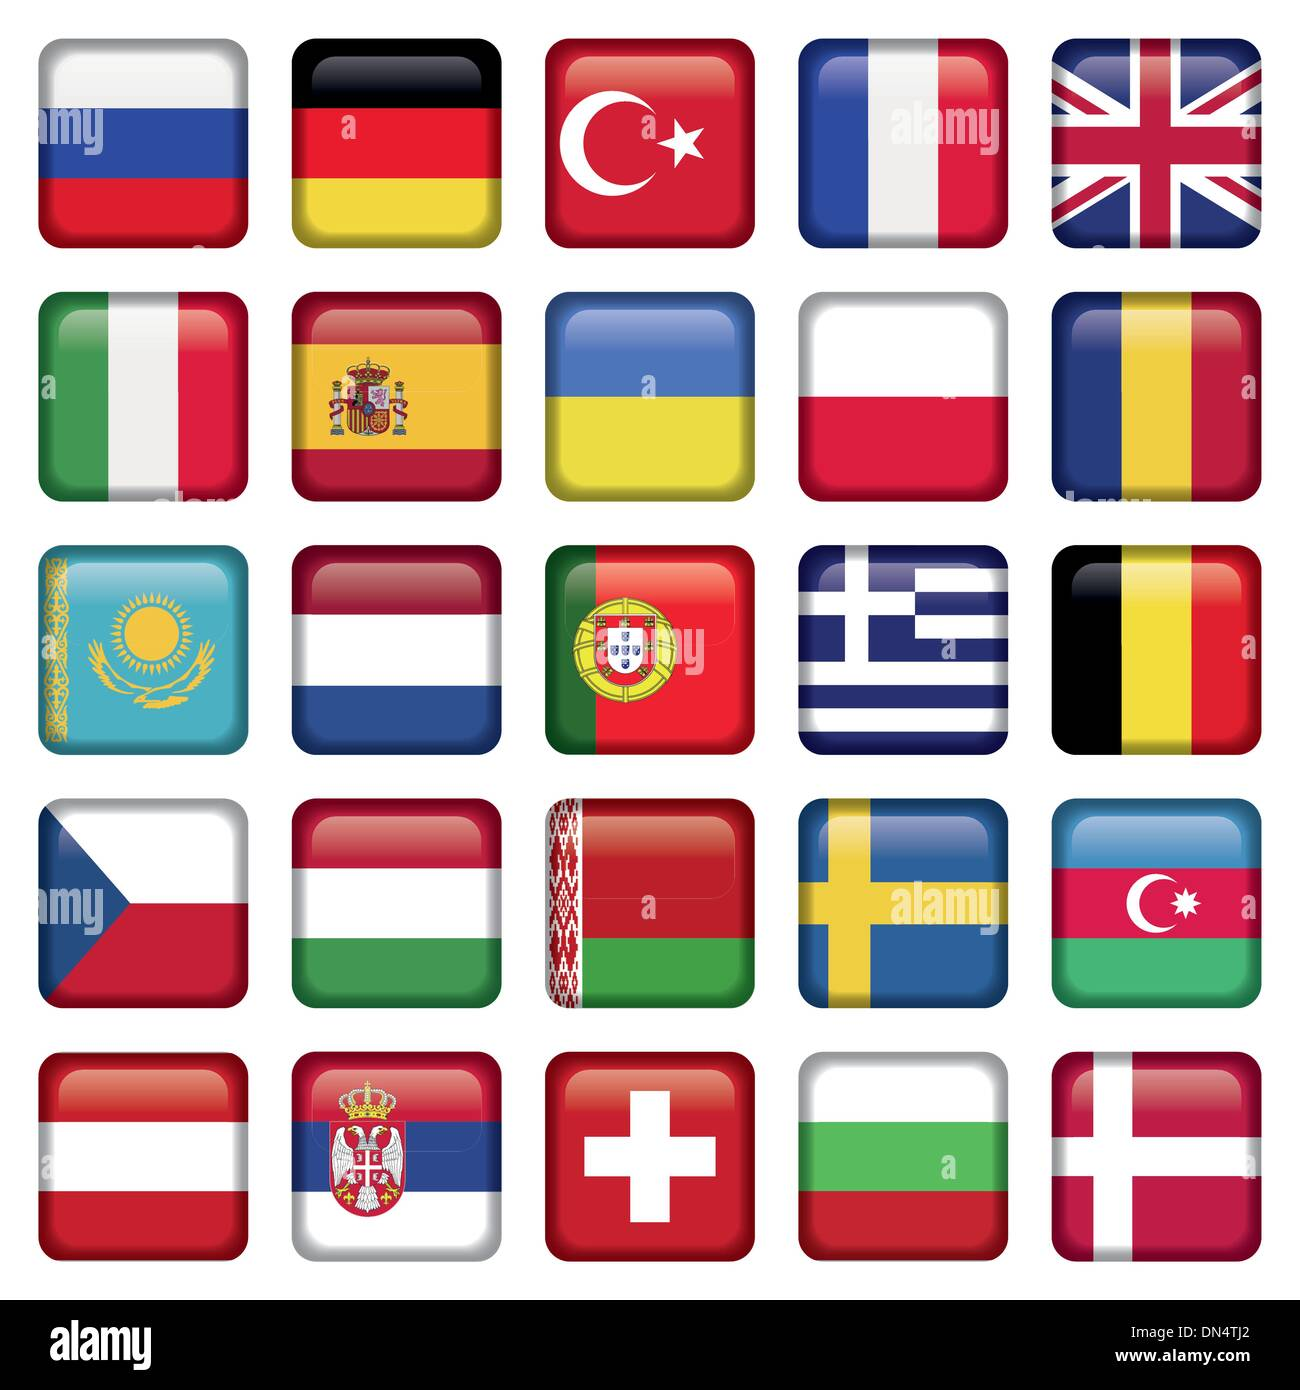 Europe Icons Squared Flags - Stock Image